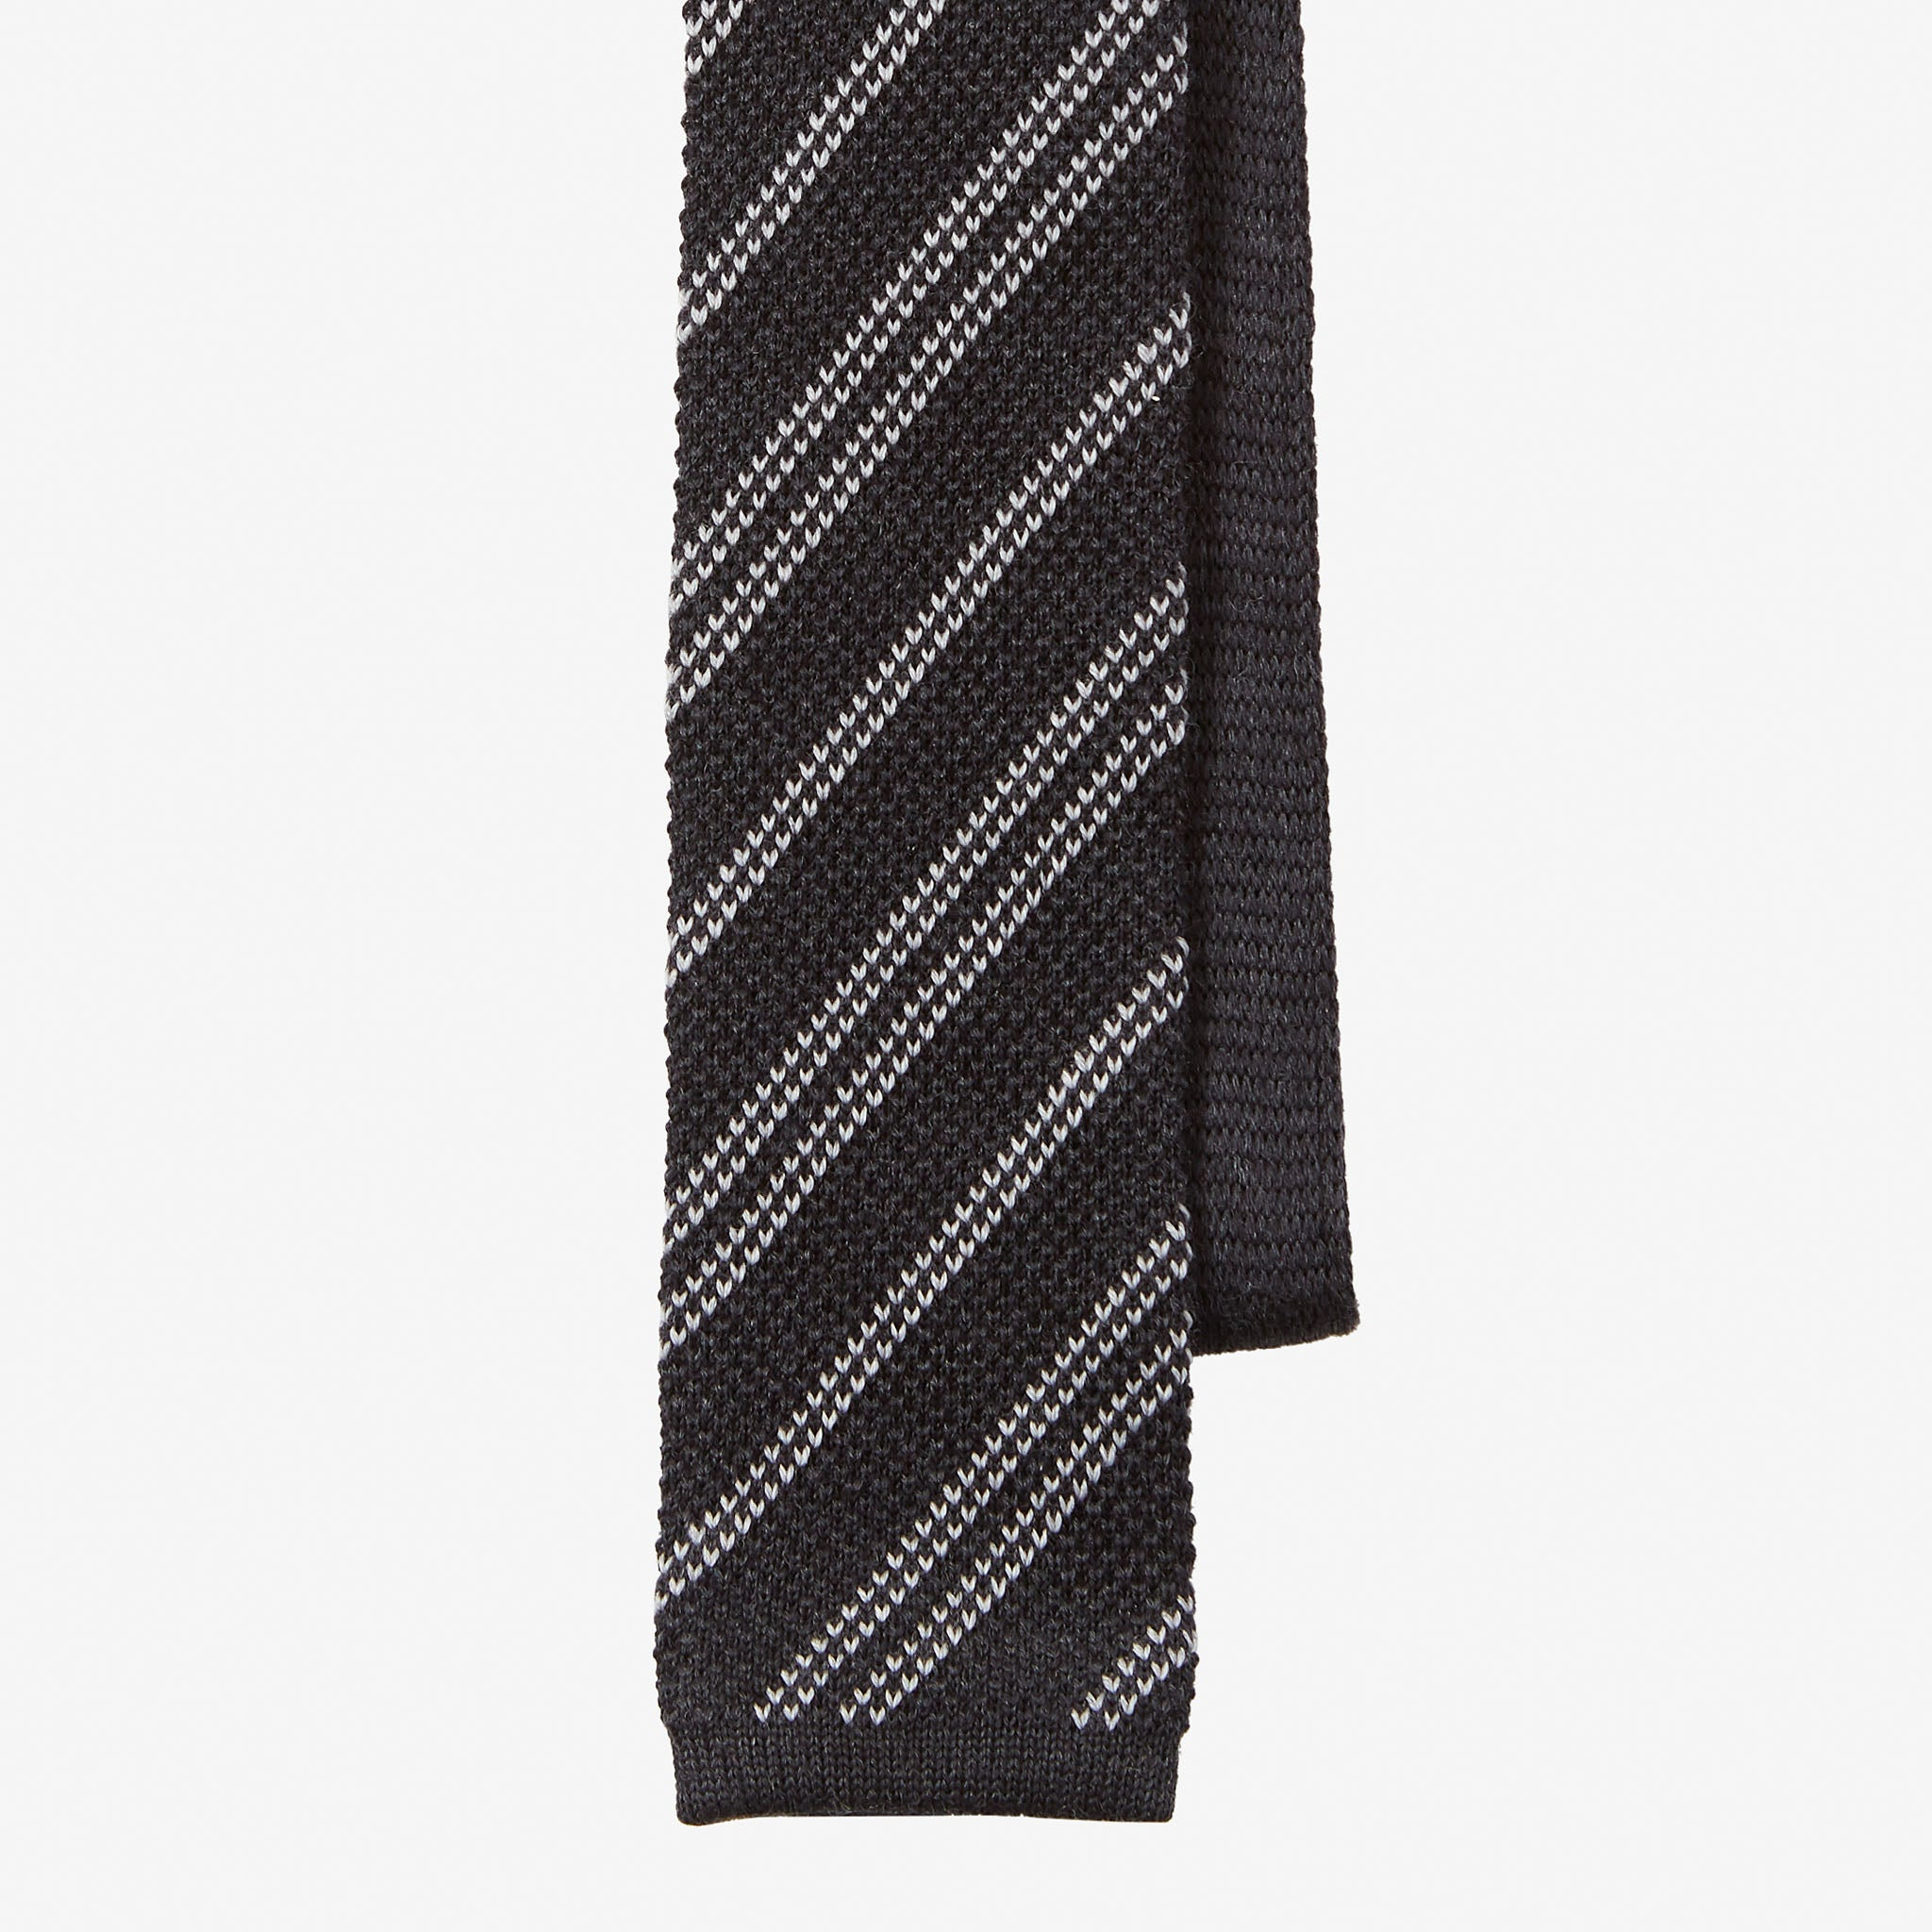 Knit Tie Wool Stripe Navy White